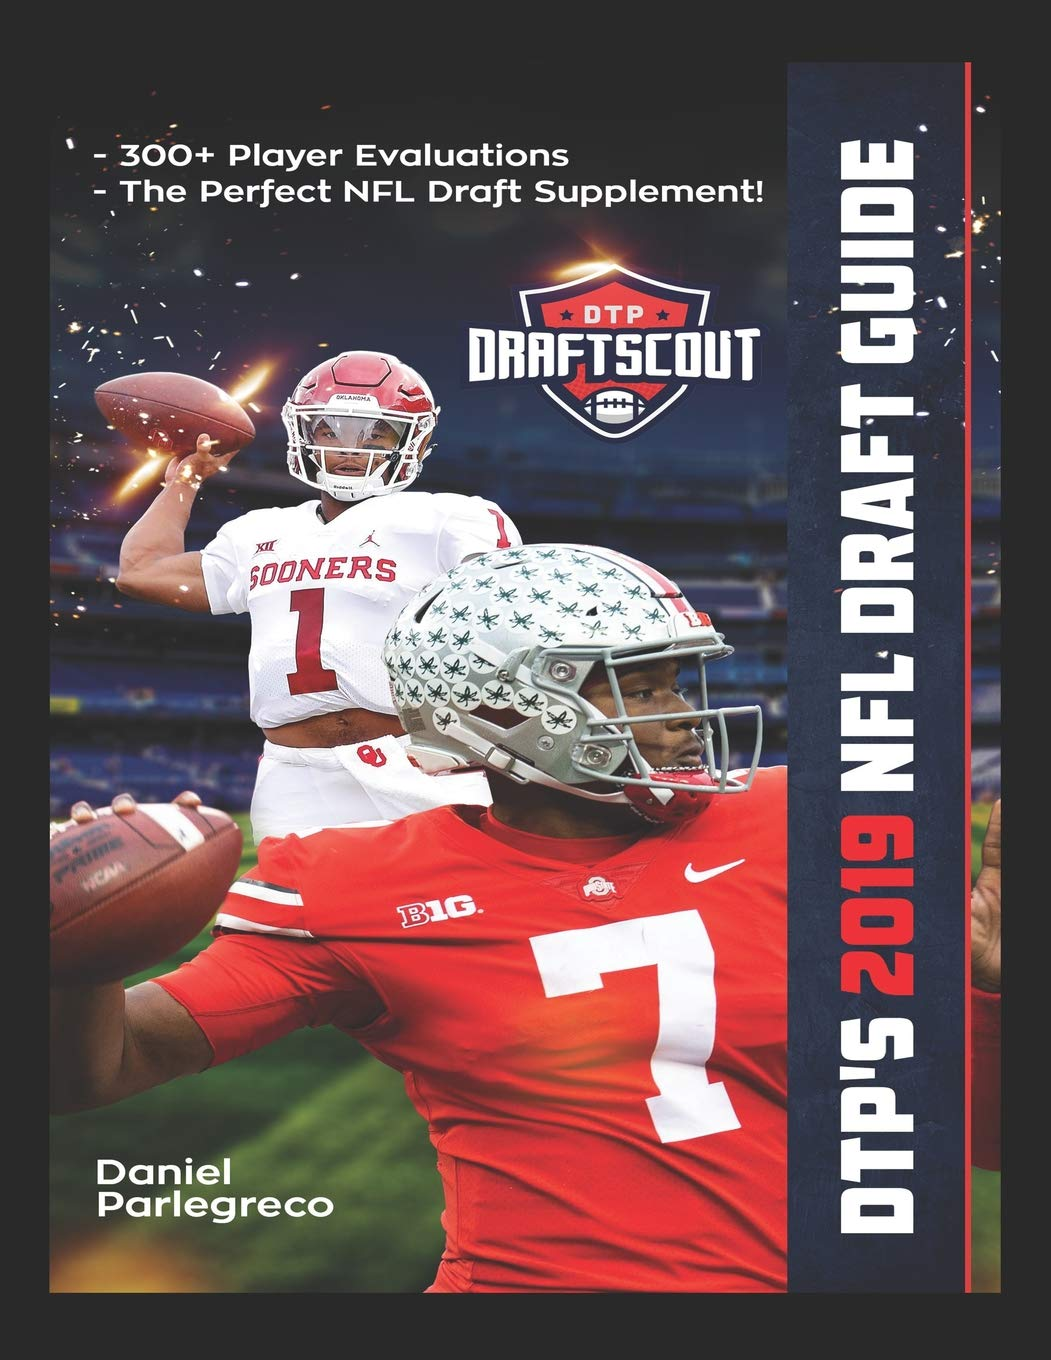 DTP's 2019 NFL Draft Guide: The Ultimate Football Draft Resource Featuring Over 300+ of the Best Prospects in the 2019 NFL Draft por Daniel Parlegreco